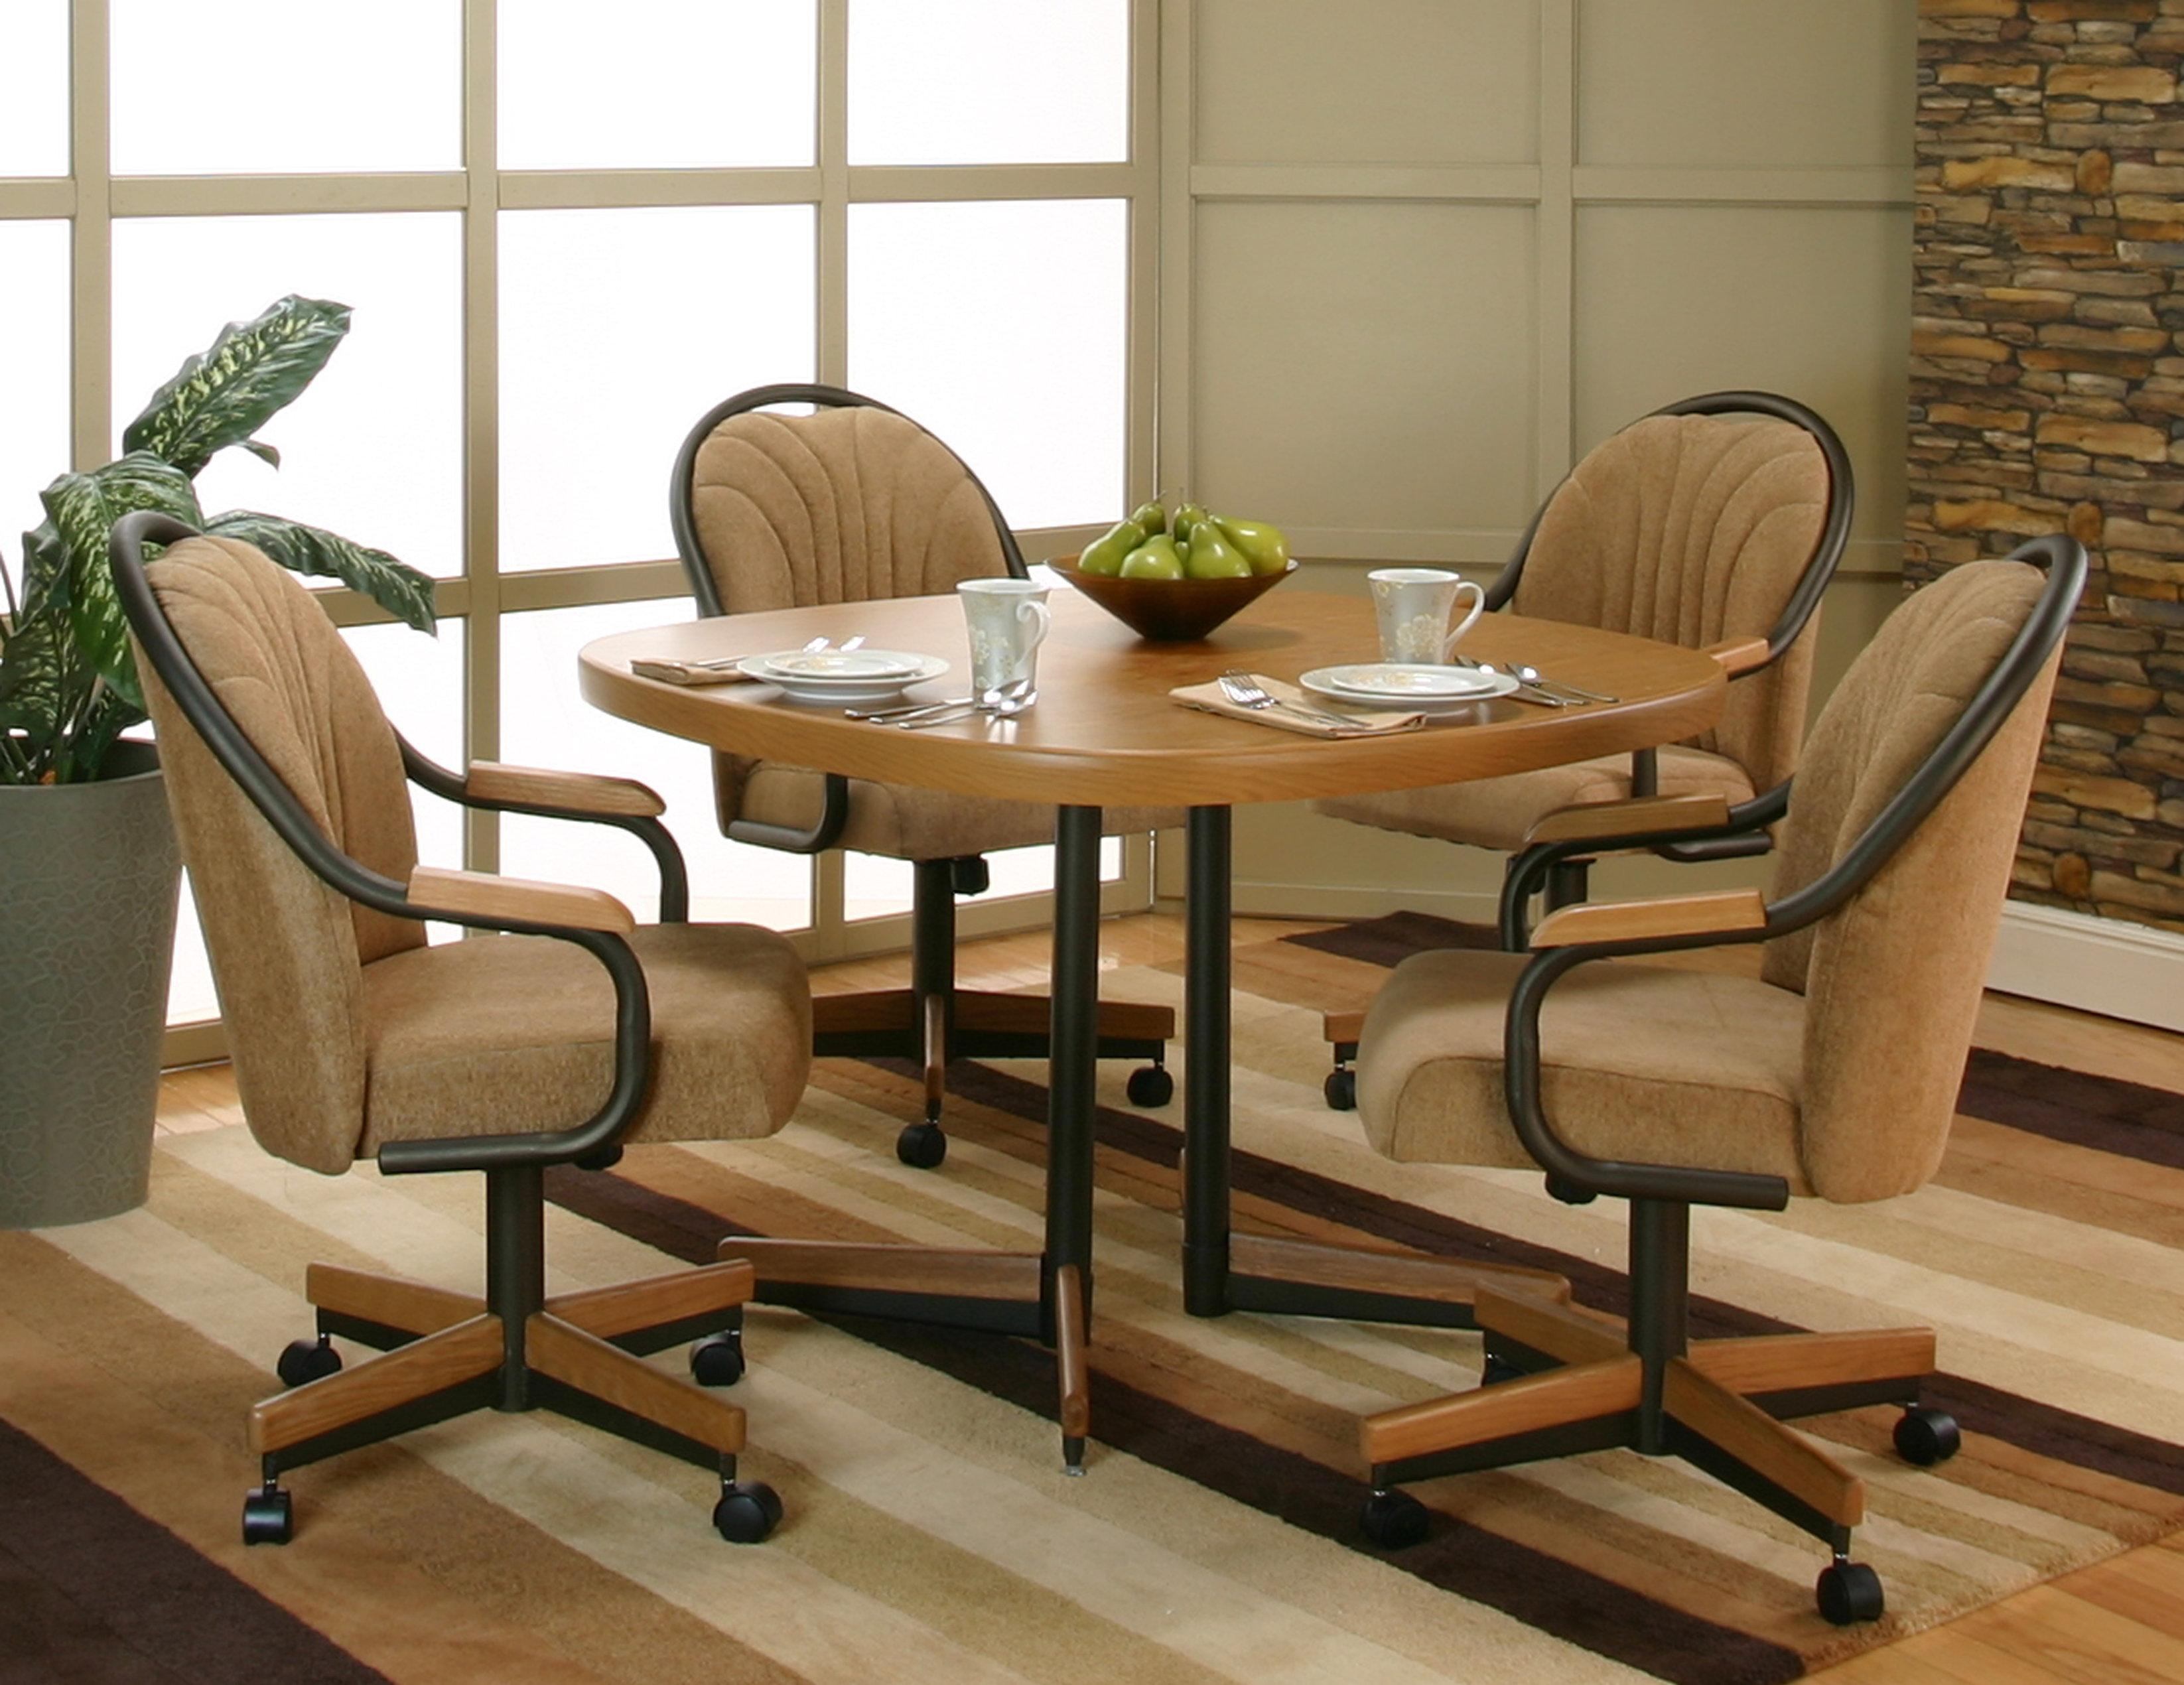 Caster Chairs Bernhardt Wynn Chair Cramco Inc Shaw Espresso Harvest Chenille Upholstered Dining Arm Room